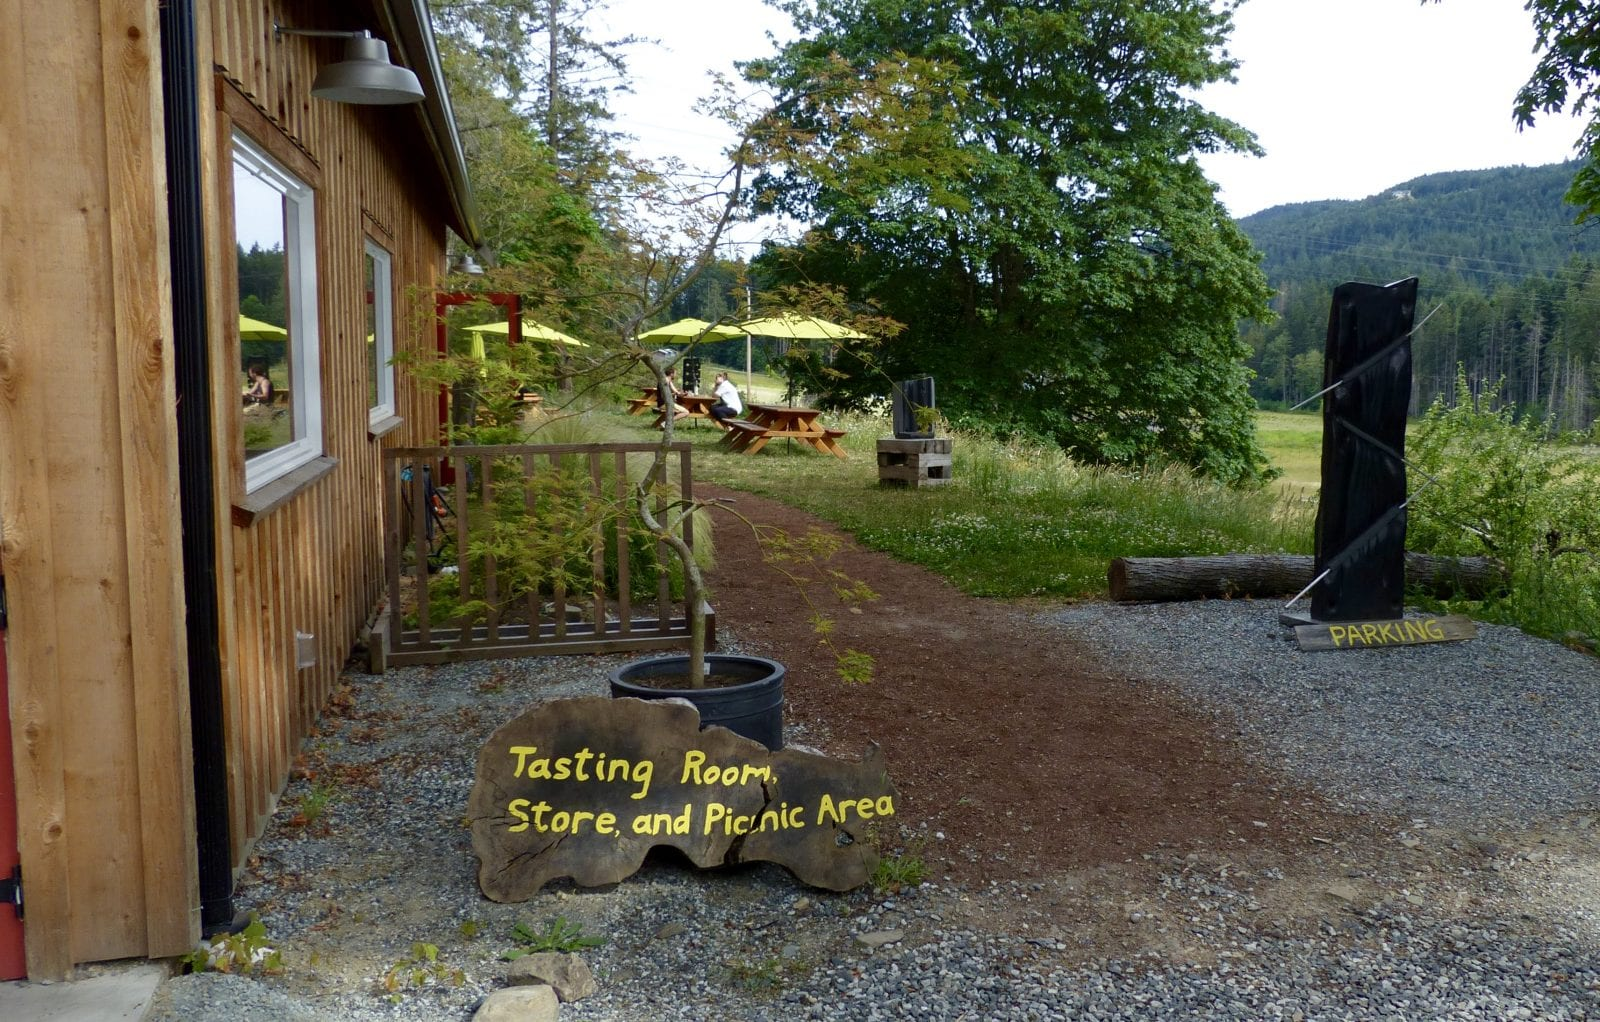 Salt Spring Wild Cider has cider tastings in their tasting room. They have also planted an orchard of cider apple trees that they grafted themselves.